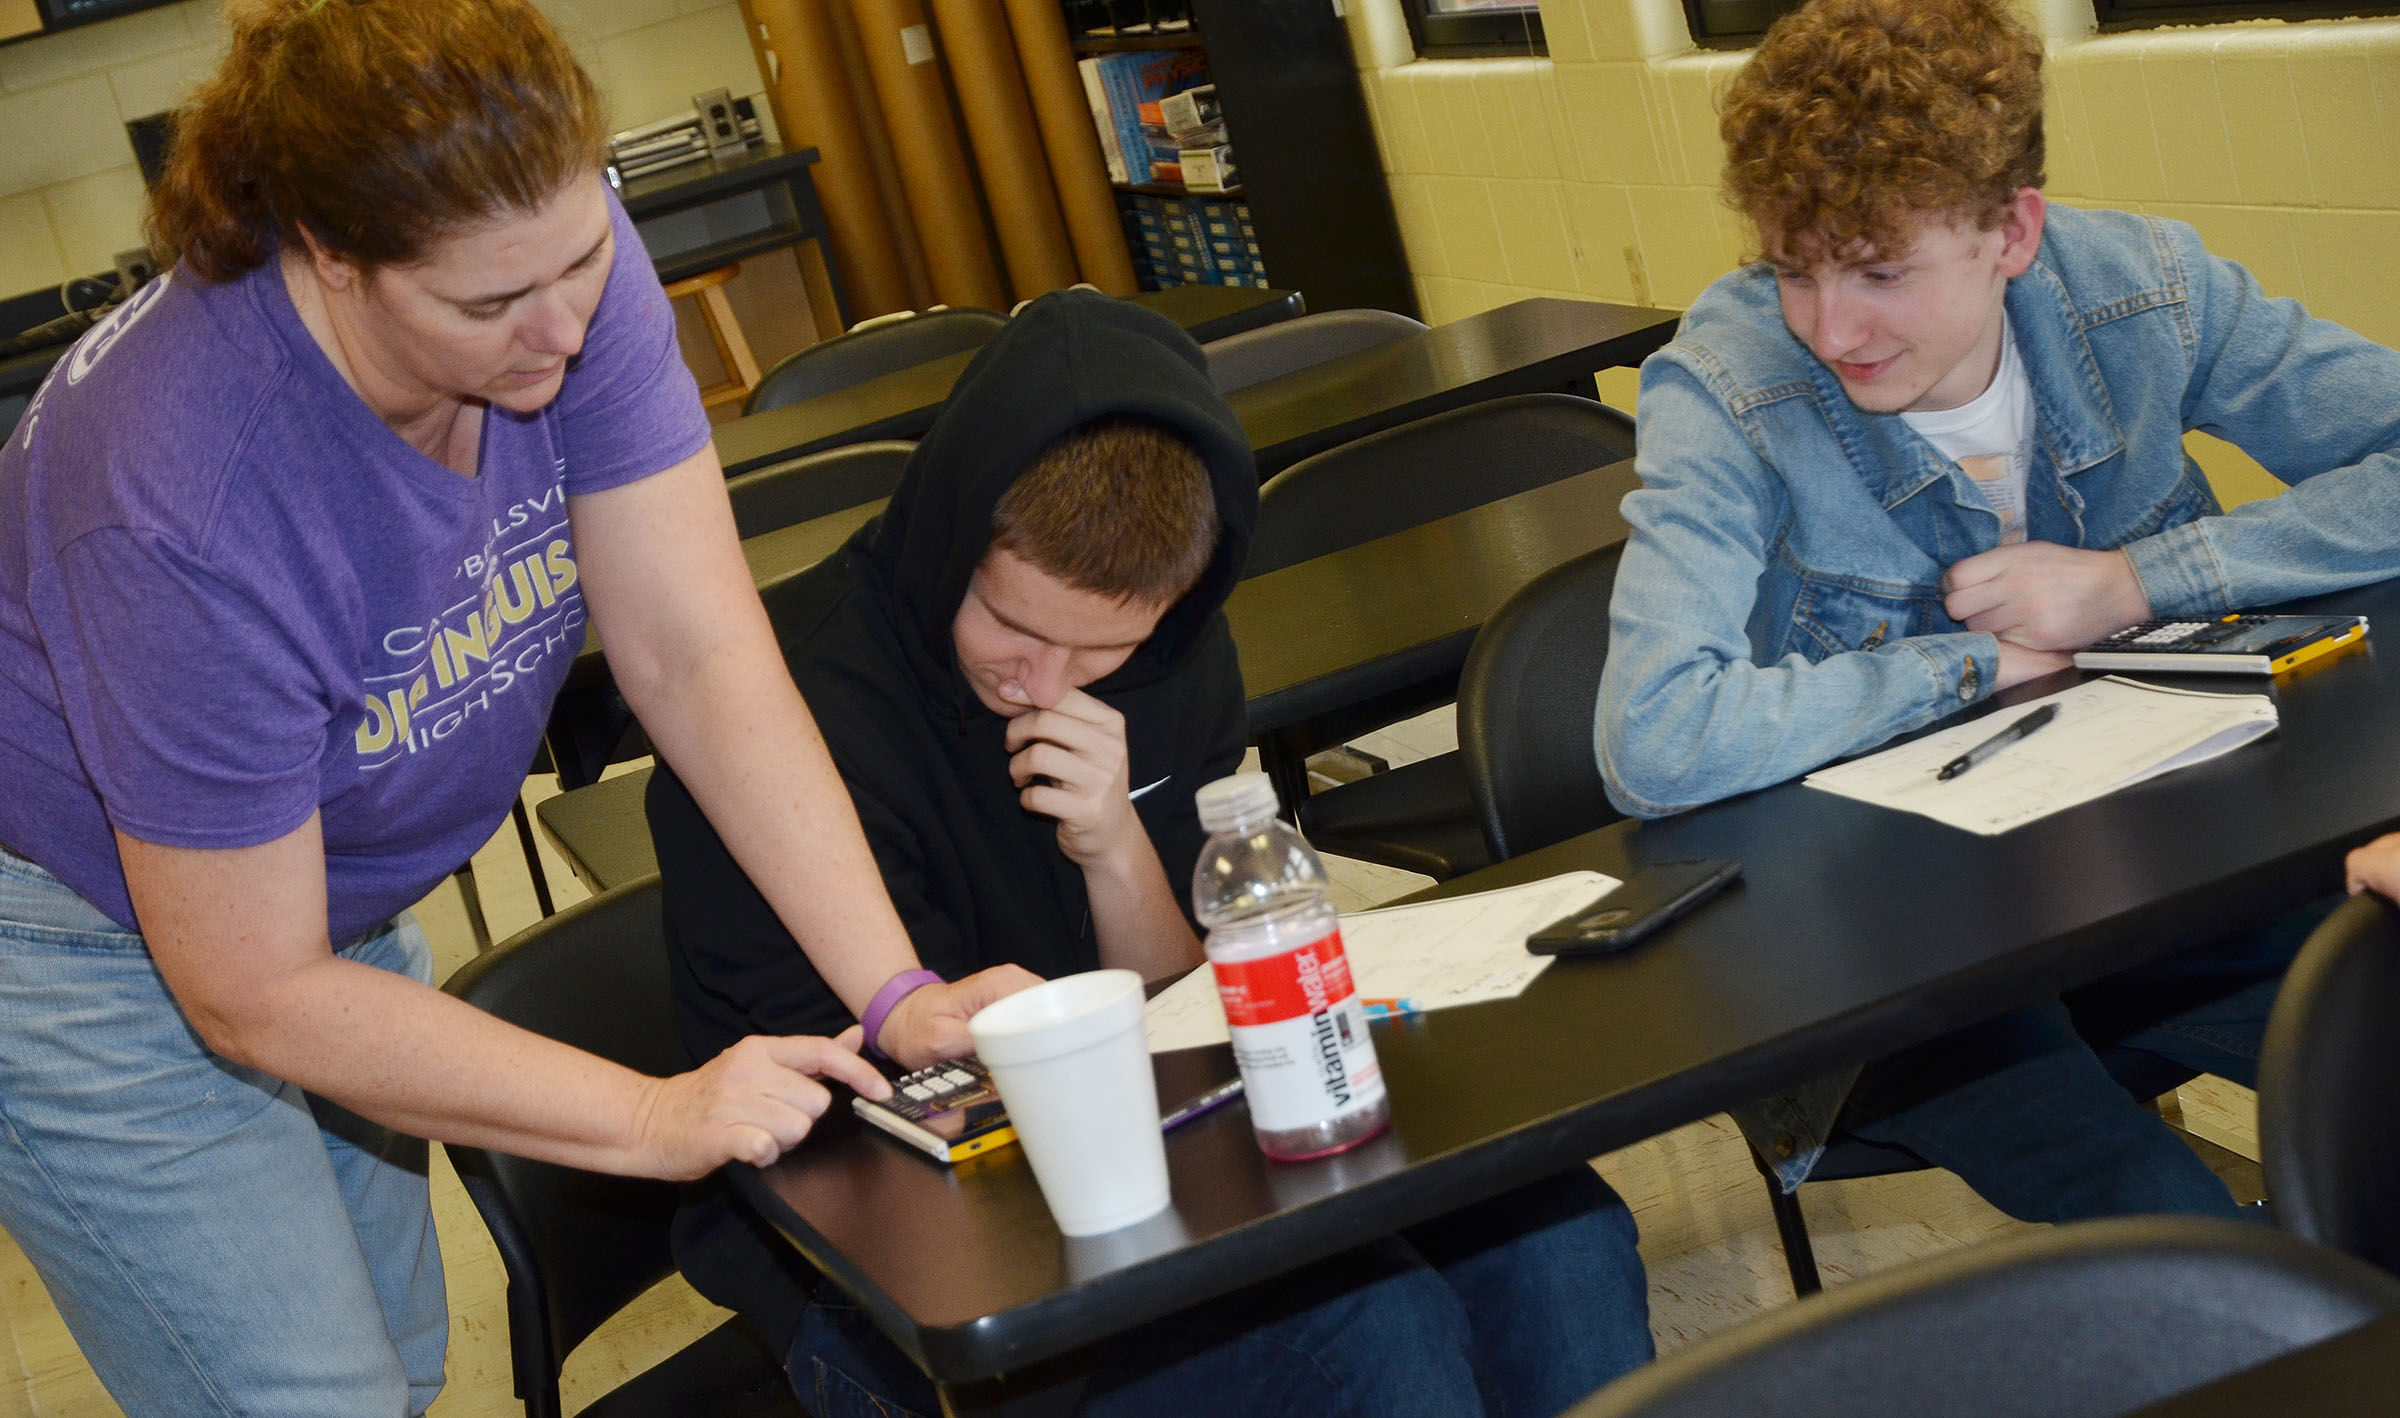 CHS teacher Tammy Wilson helps sophomores Myles Murrell, center, and Jackson Hinton with a sample math ACT question.